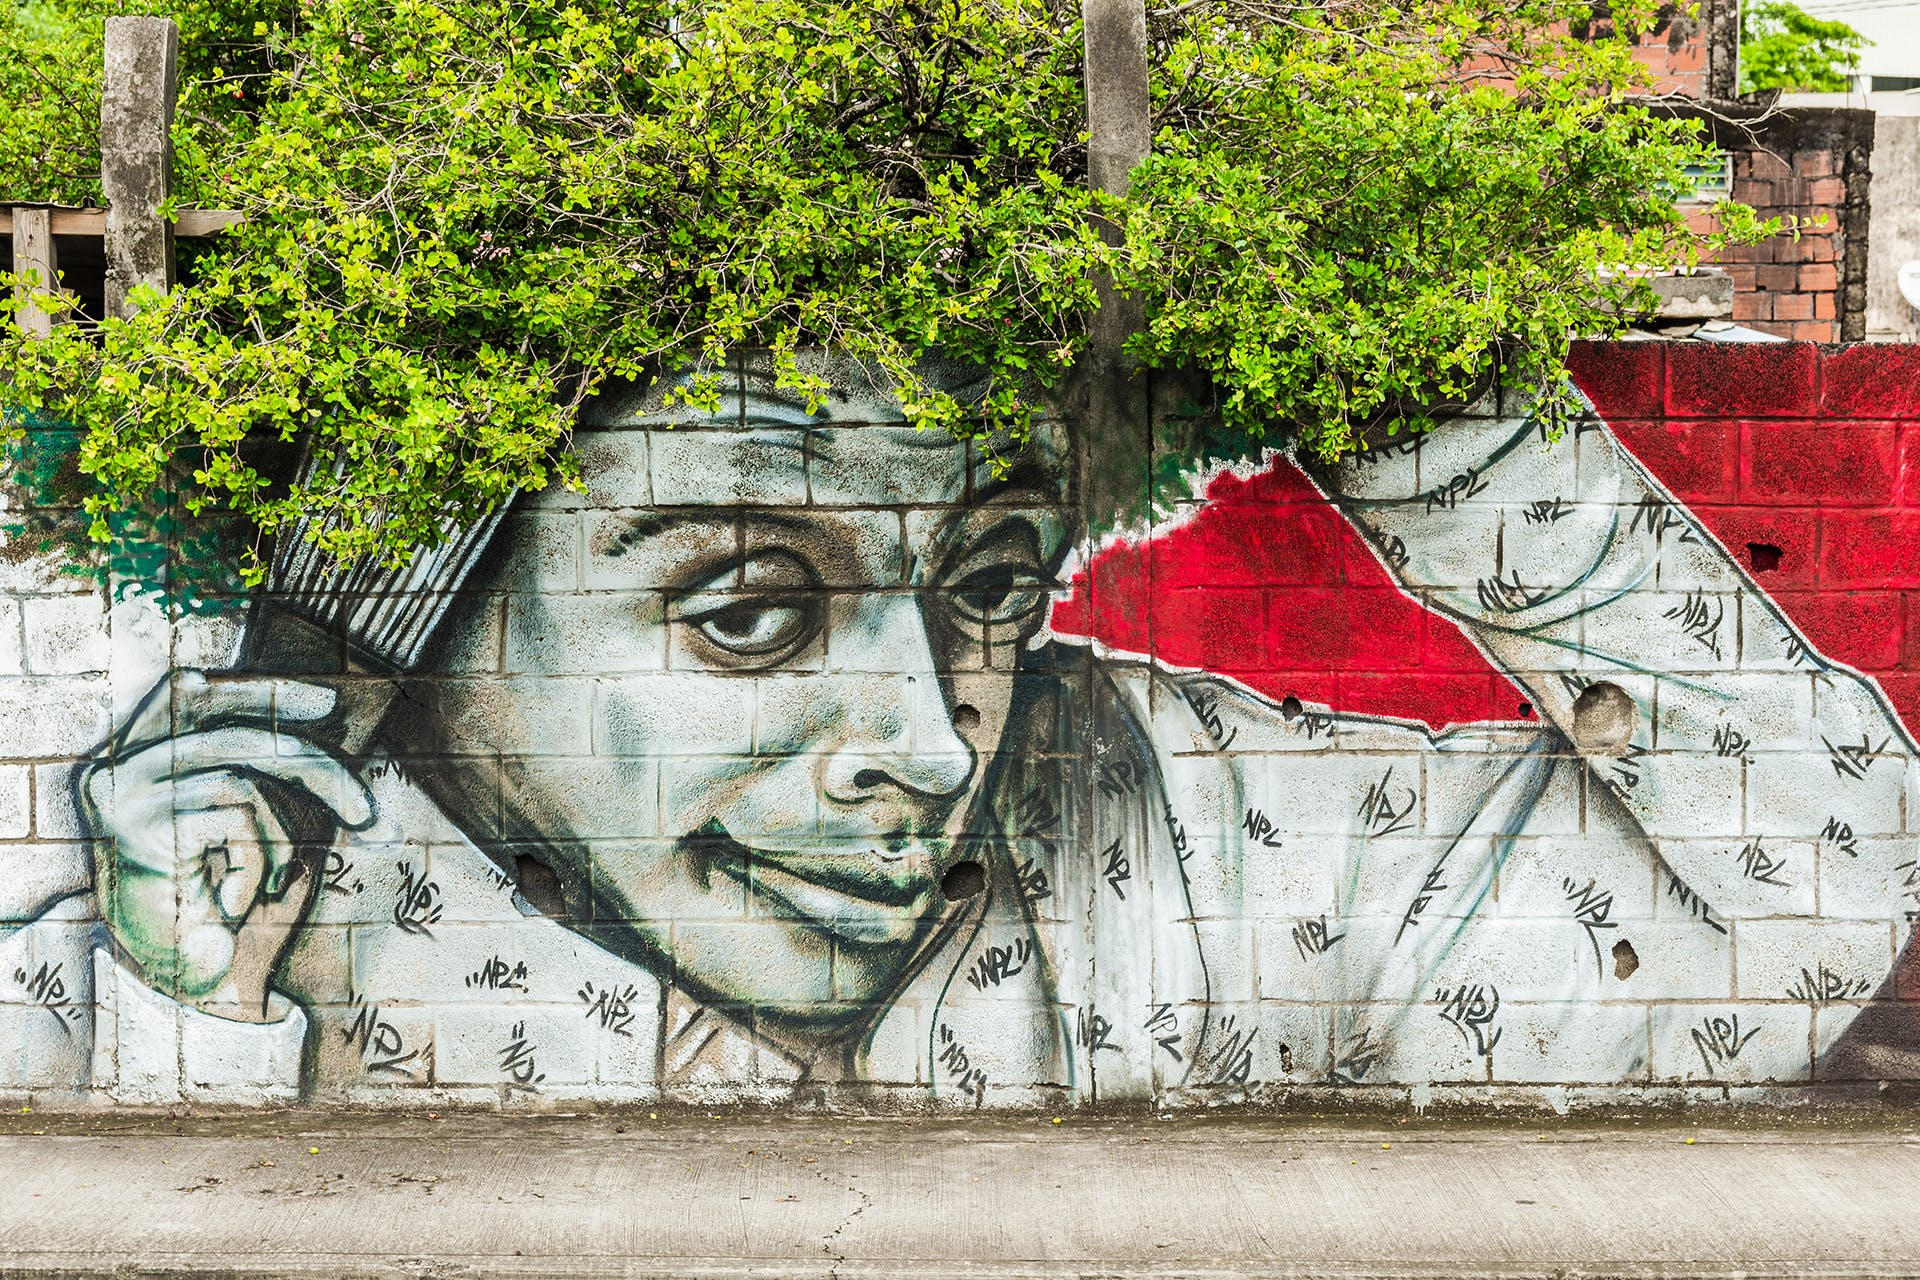 A graffiti-covered wall with the image of a man creates the illusion that a tree's foliage is the person's hair. This is an example of the tactics often used in guerrilla marketing